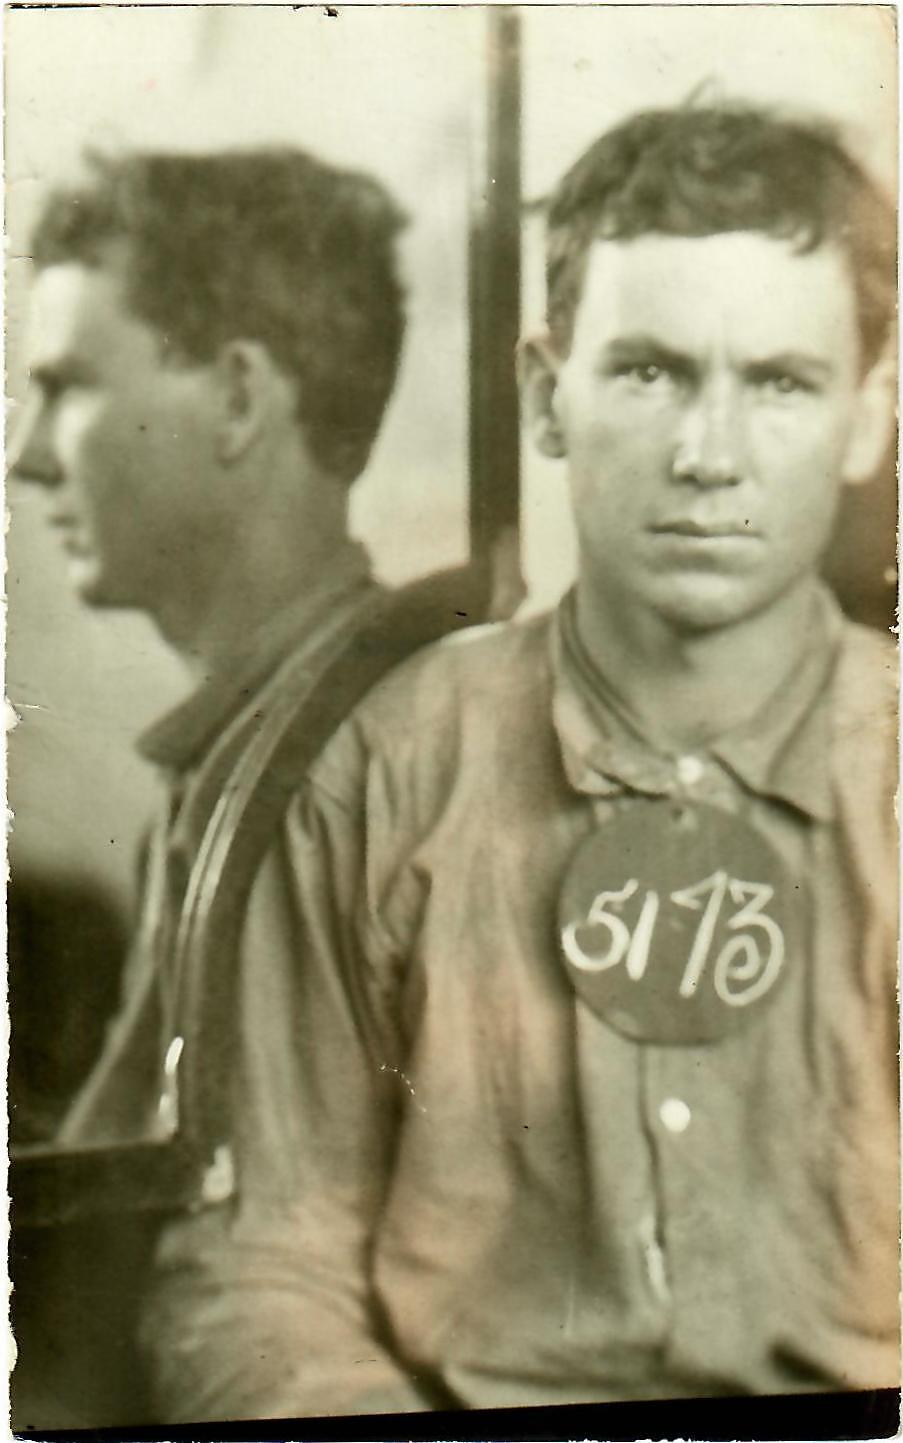 mug shot of Tom Powers